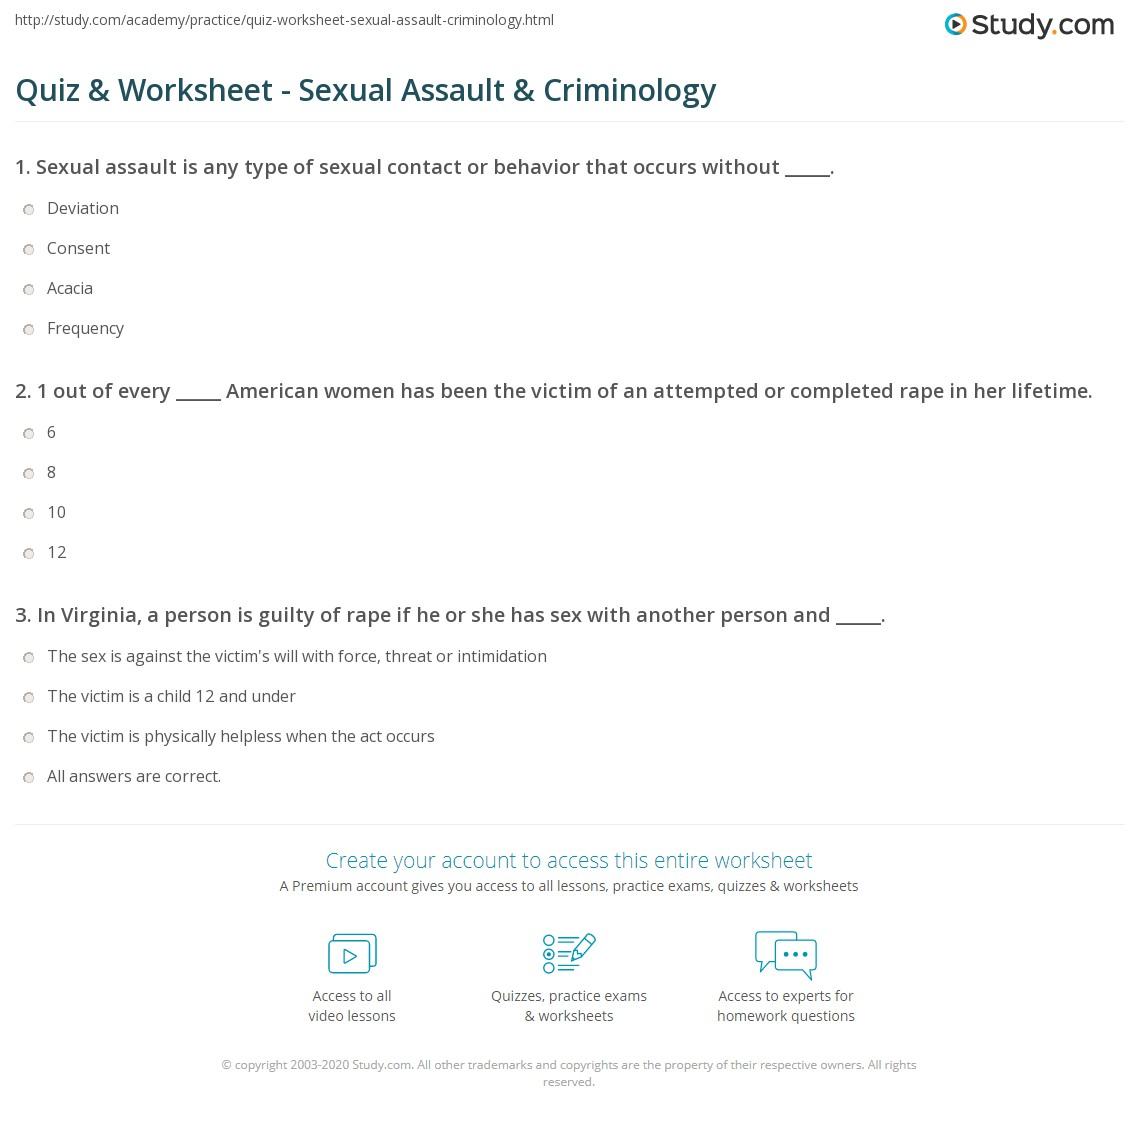 picture regarding Restorative Justice Printable Worksheets named Quiz Worksheet - Sexual Attack Criminology